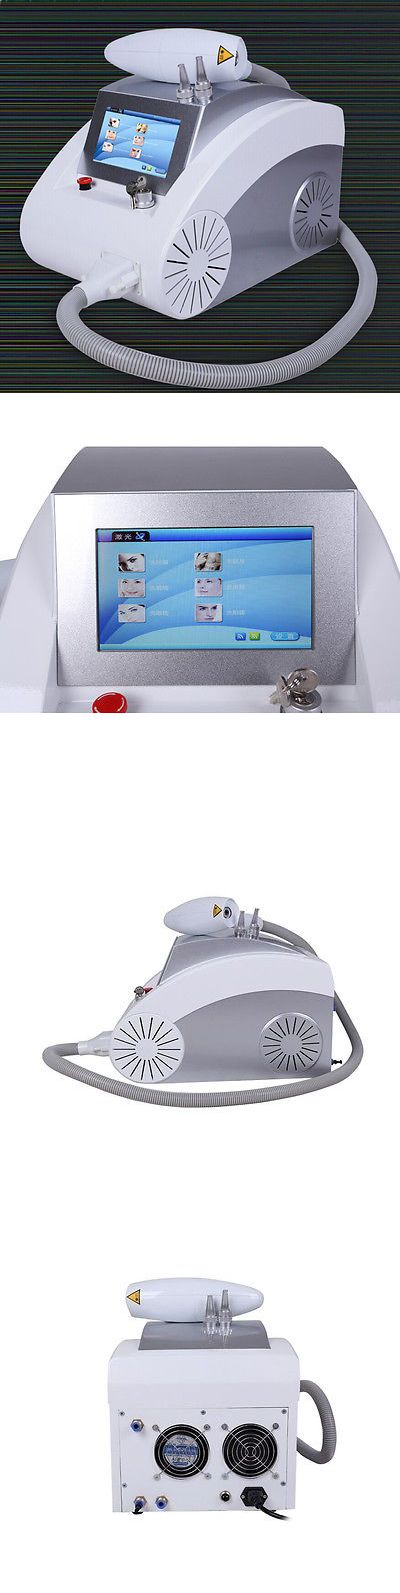 Tattoo Removal Machines: Q-Switch Nd: Yag Laser Tattoo Birthmark Removal Salon Use Machine BUY IT NOW ONLY: $1700.0